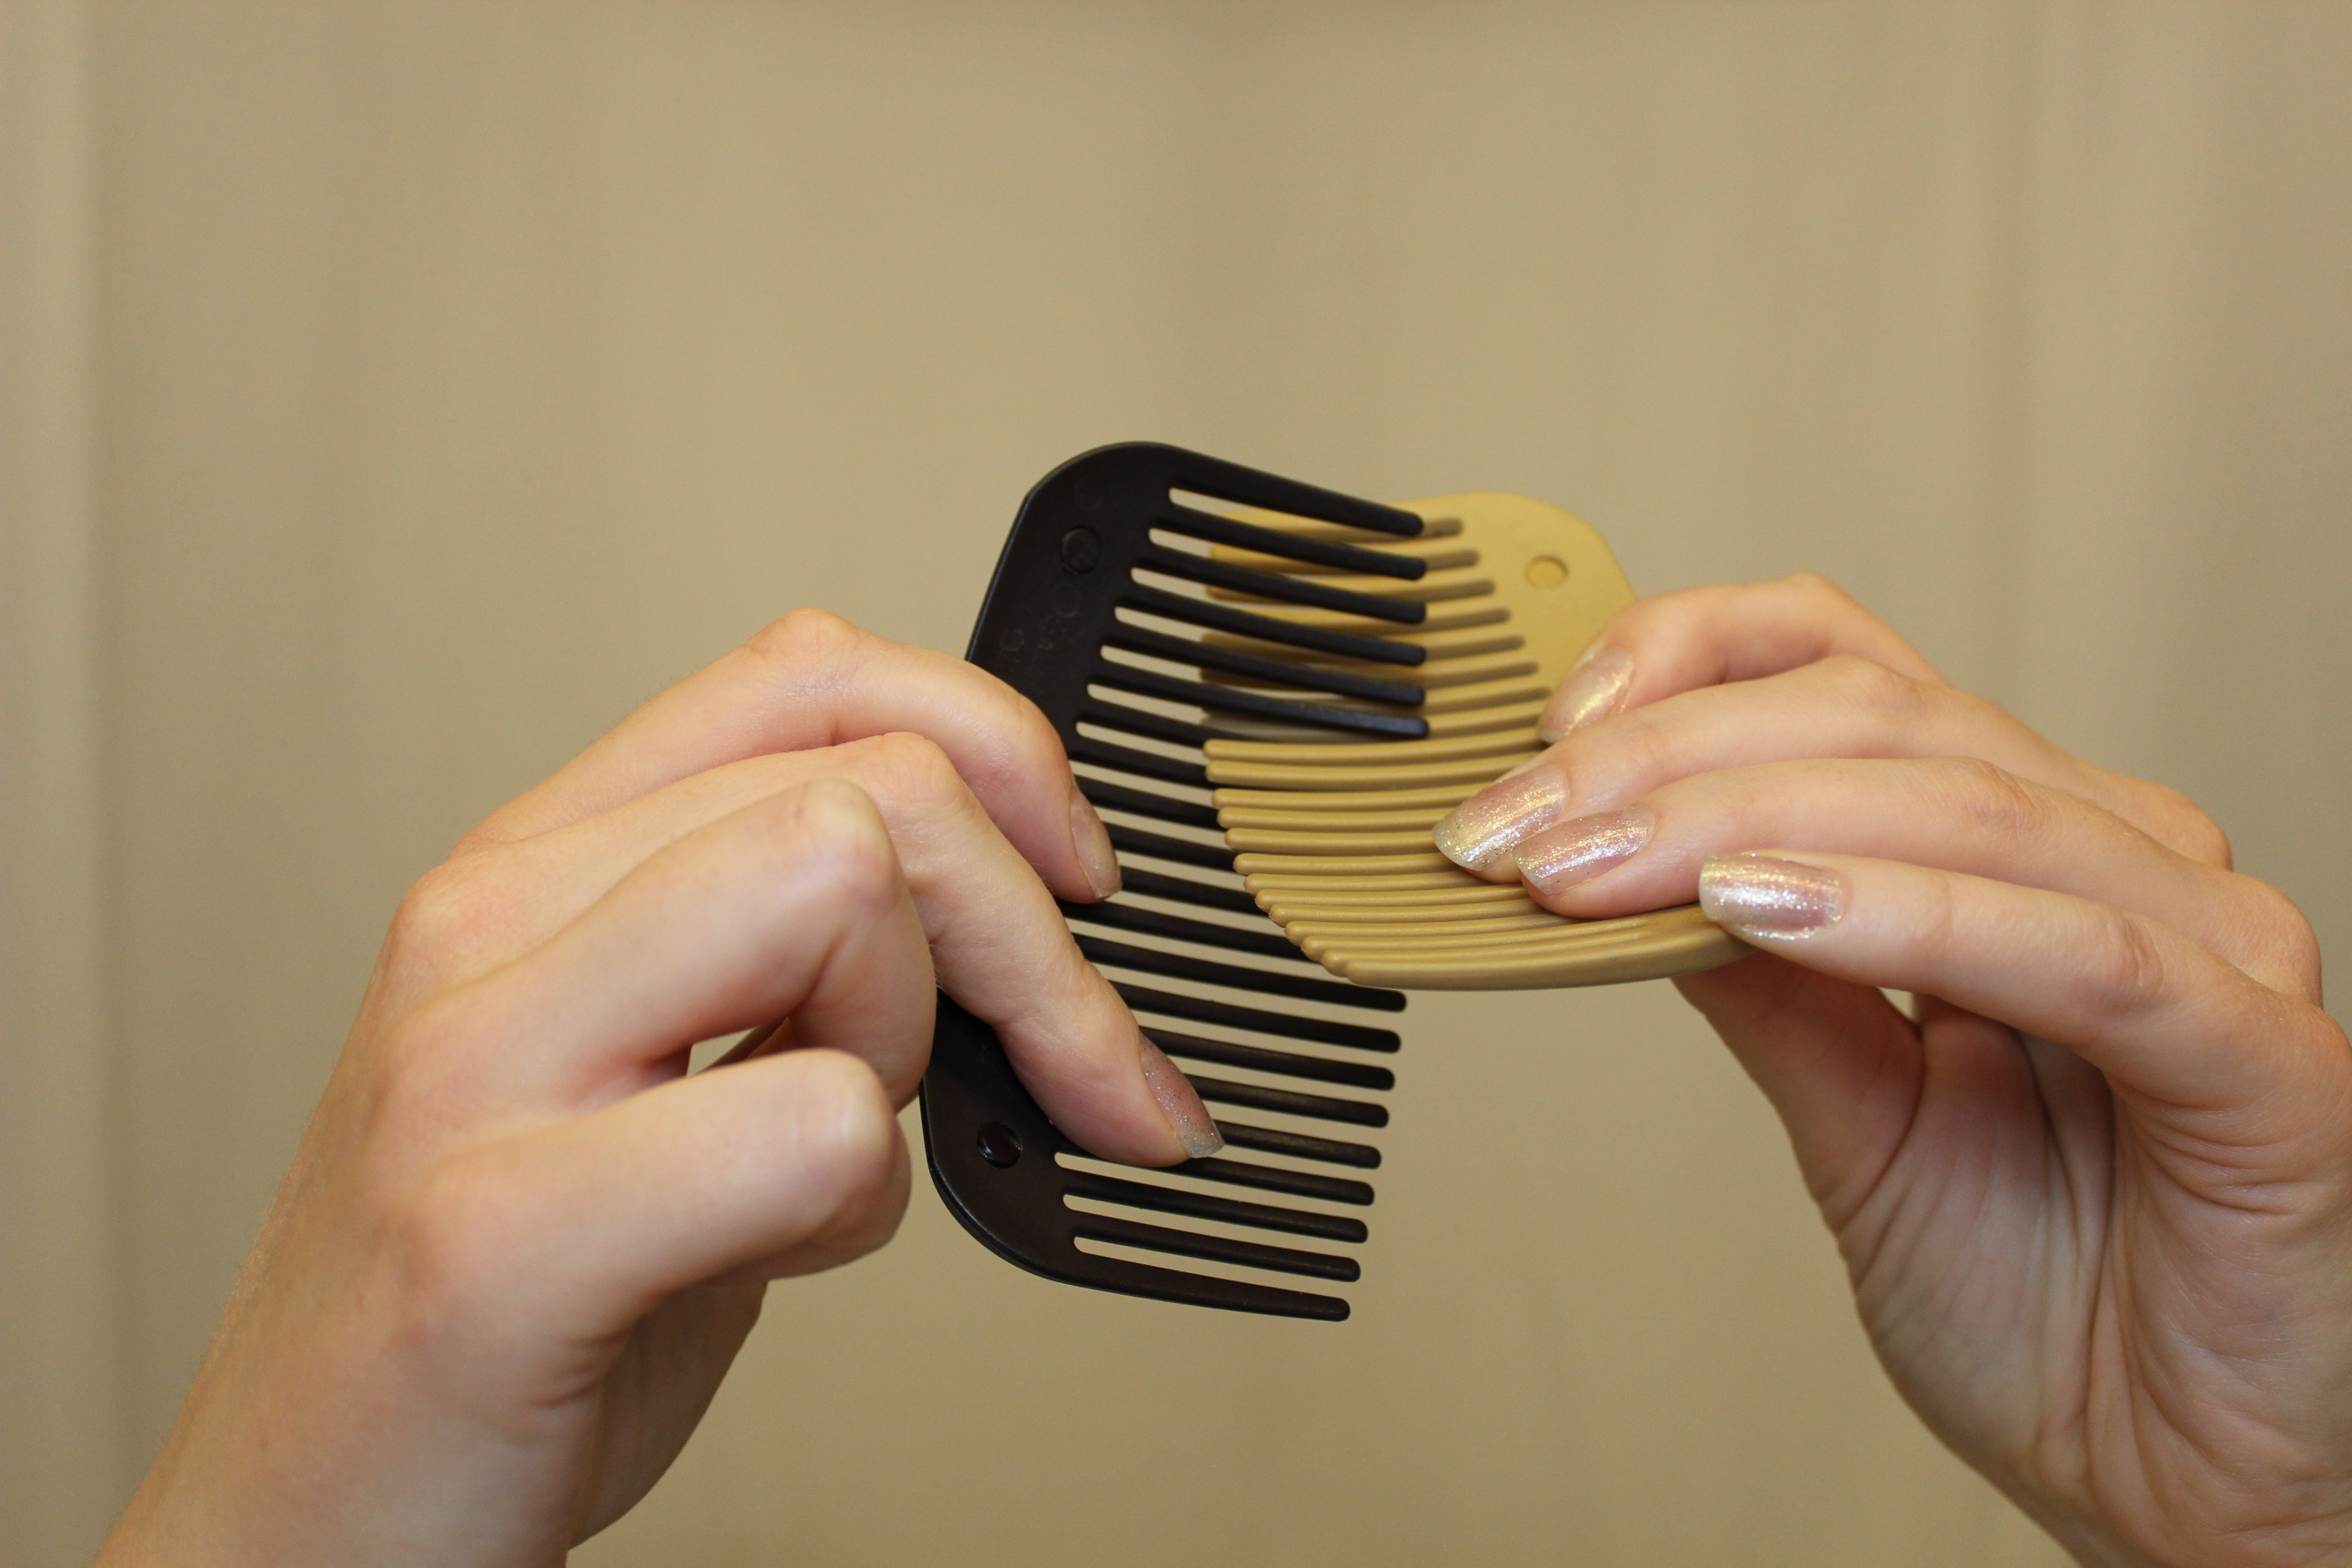 How to interlock the combs 1